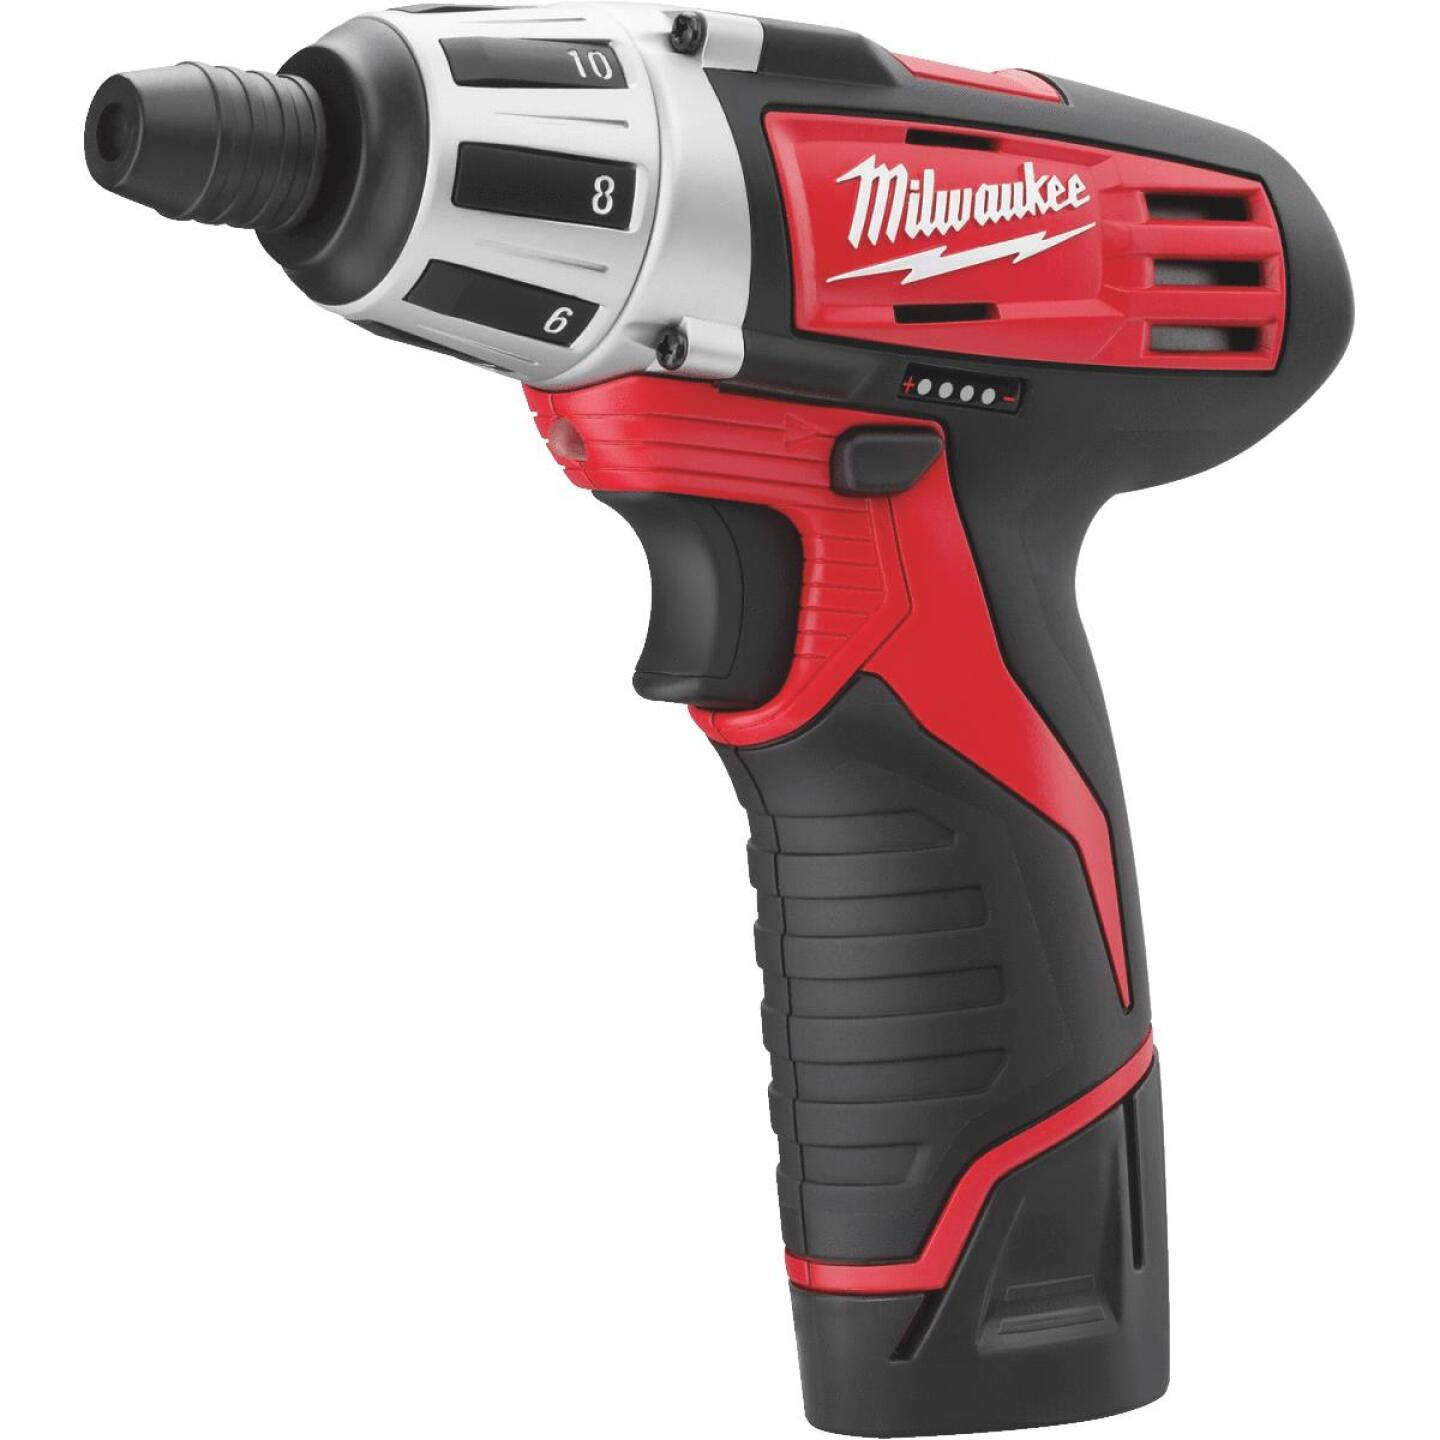 Milwaukee 2-Tool M12 12V Lithium-Ion Screwdriver & Reciprocating Saw Cordless Tool Combo Kit Image 2